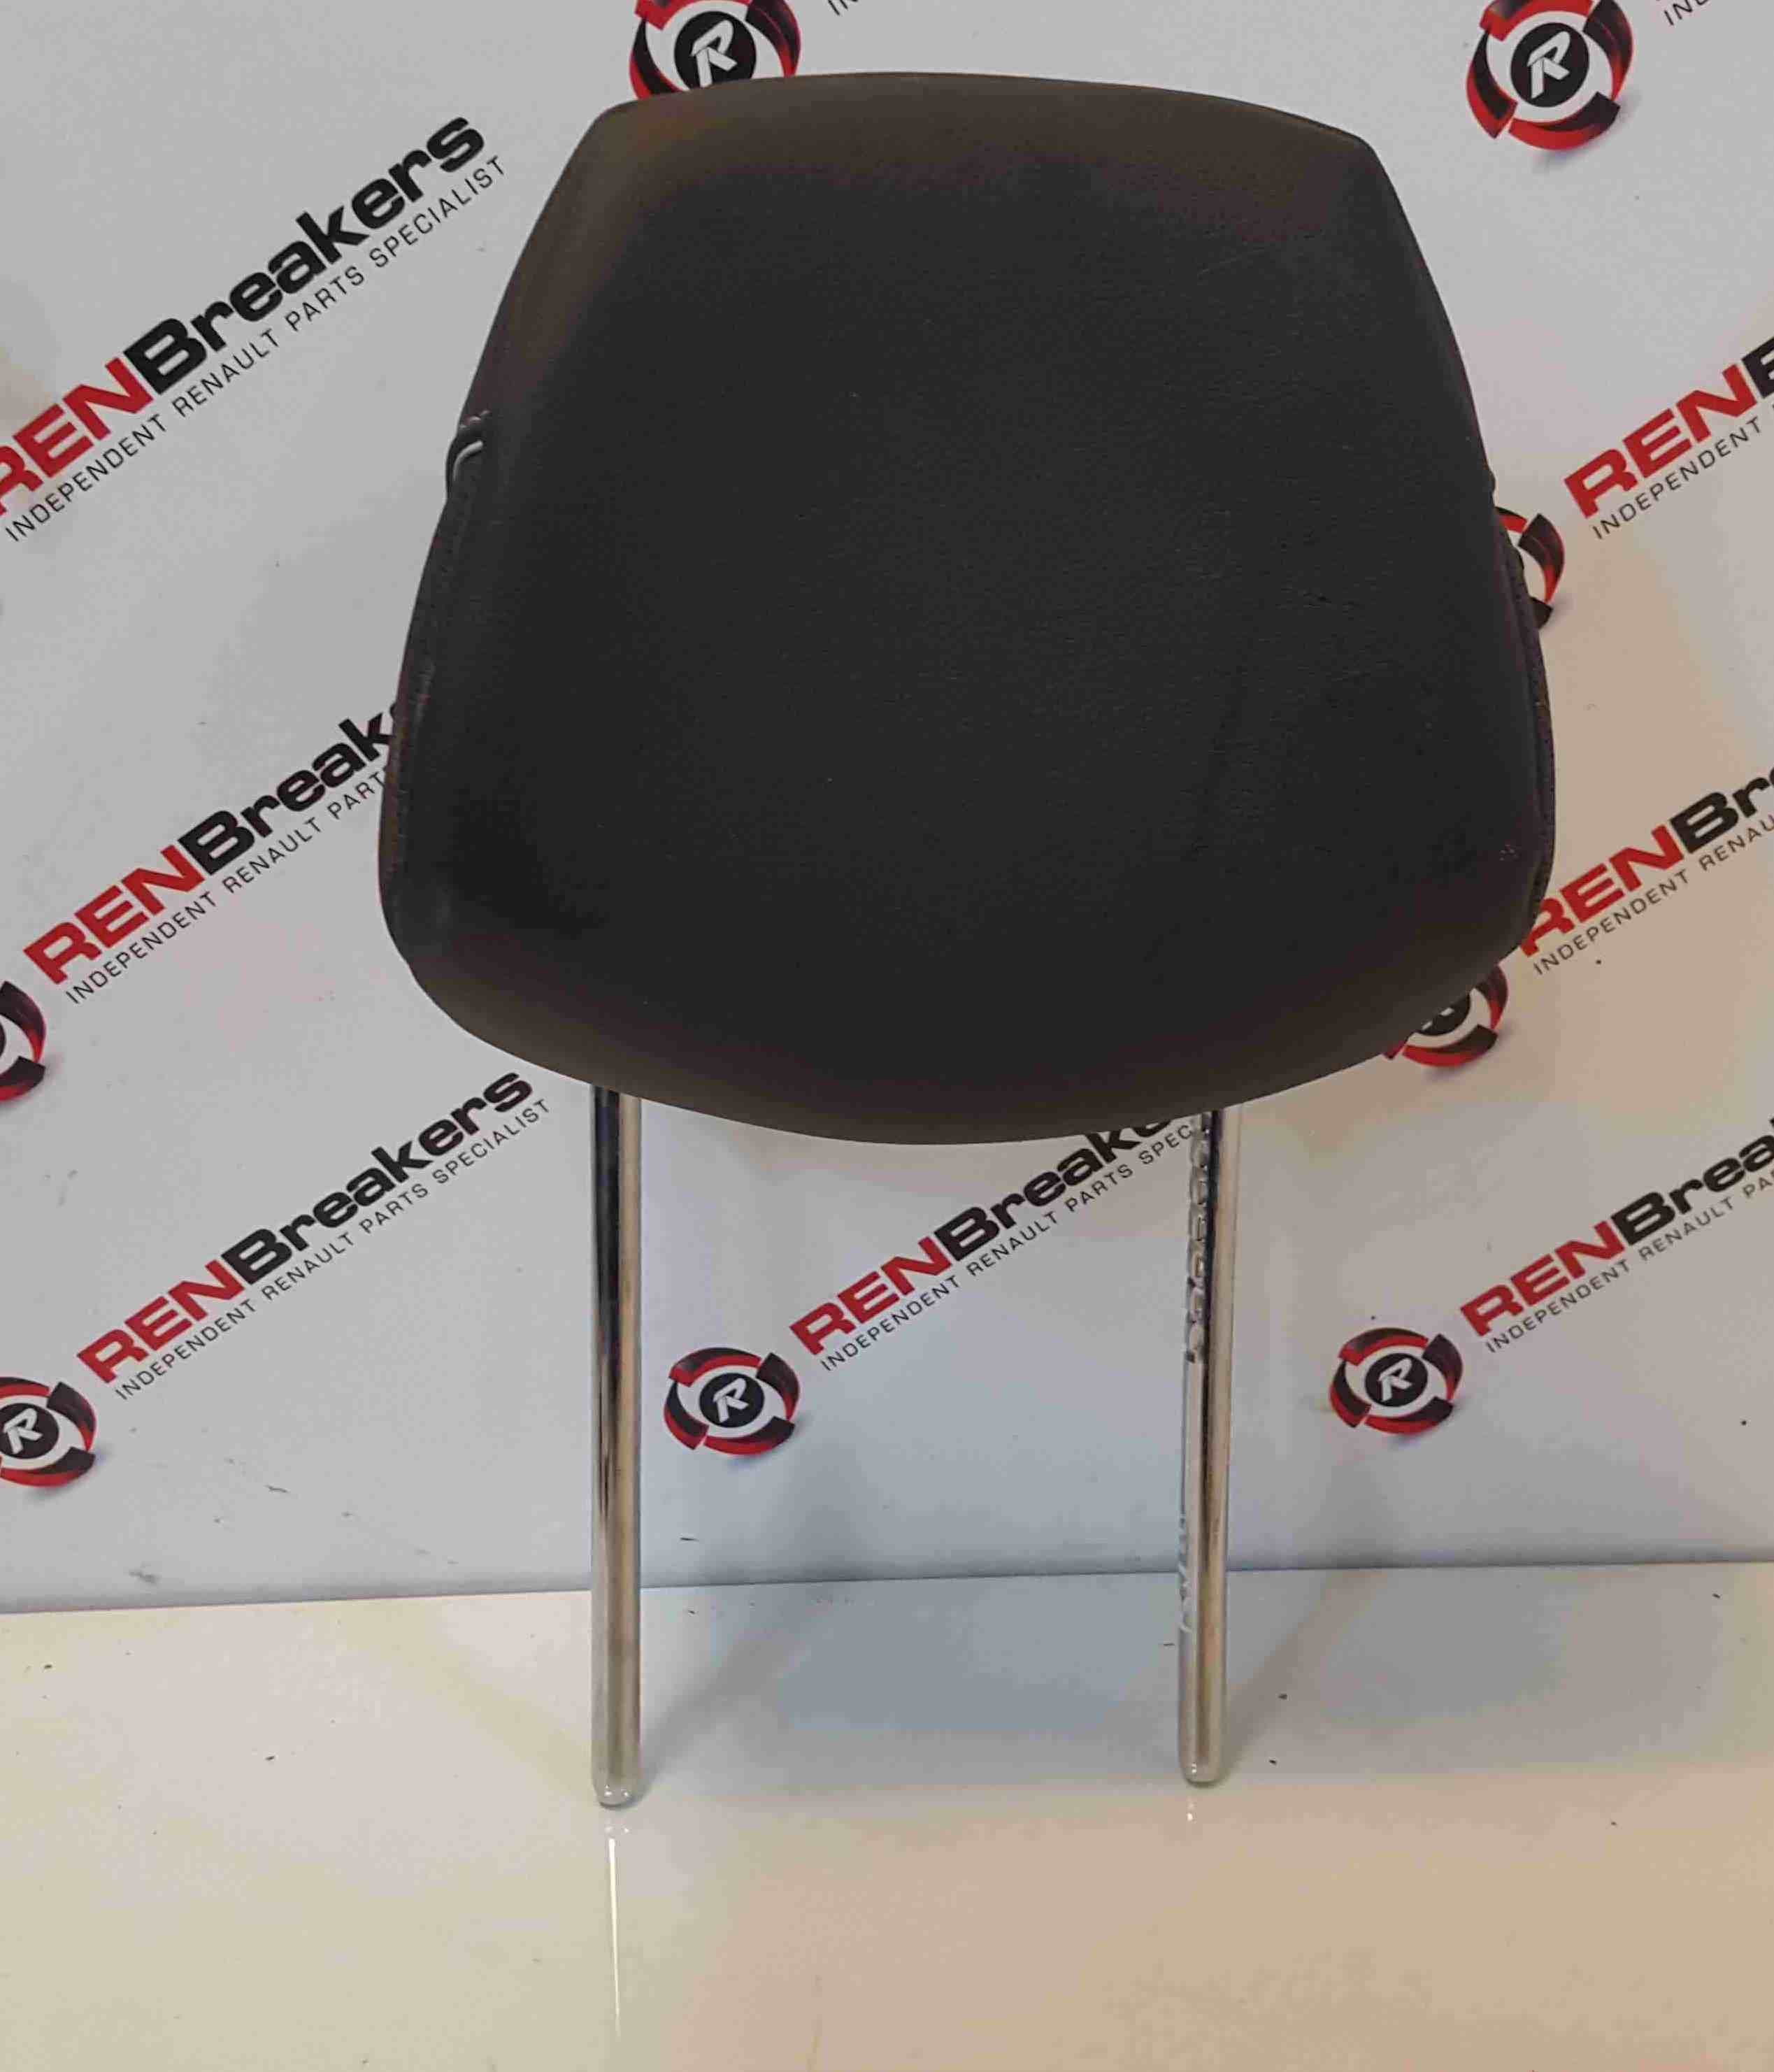 Renault Kadjar 2015-2018 Front Chair Head Rest Leather